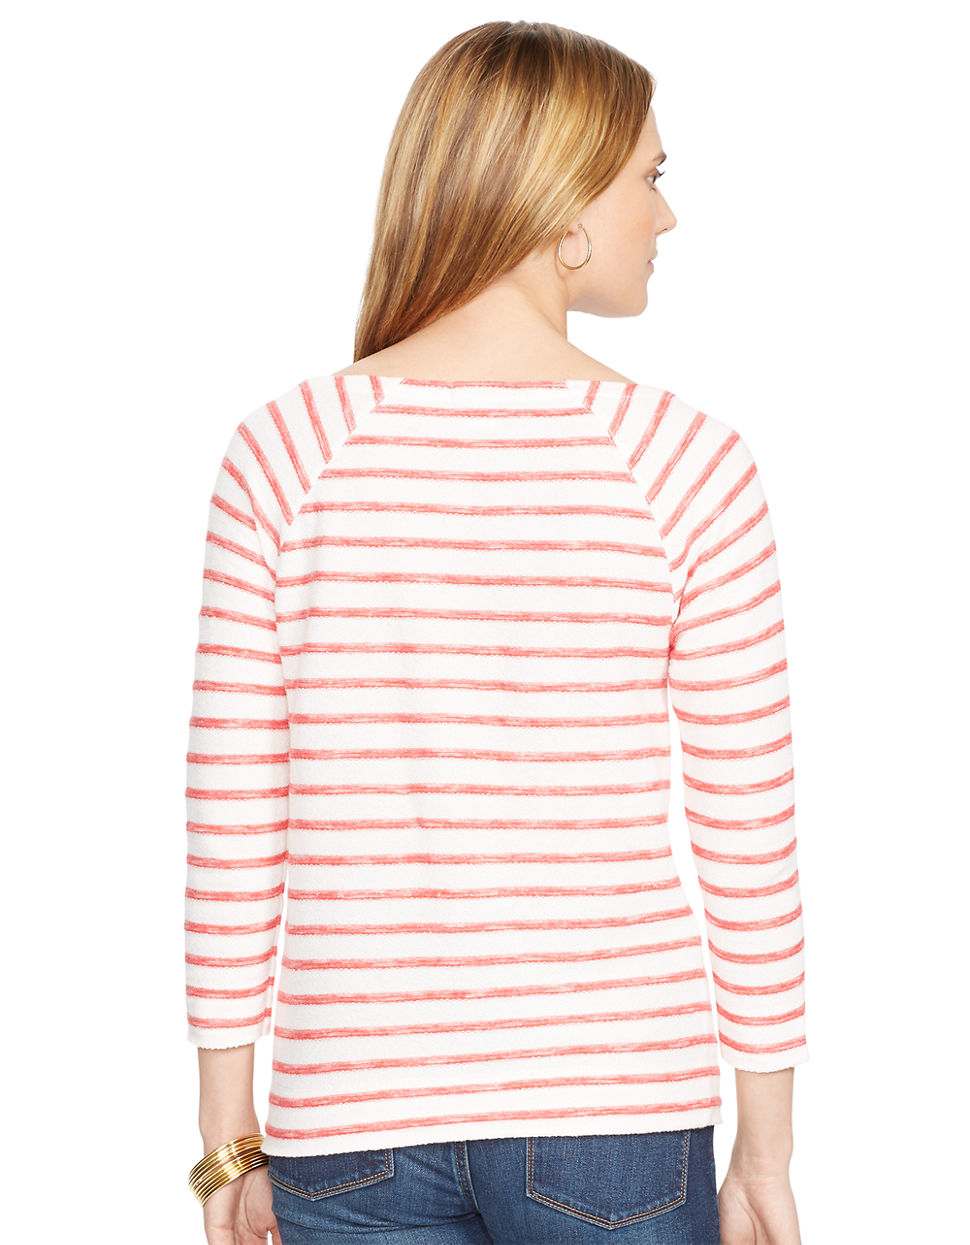 lauren by ralph lauren striped french terry pullover in pink pearl multi lyst. Black Bedroom Furniture Sets. Home Design Ideas